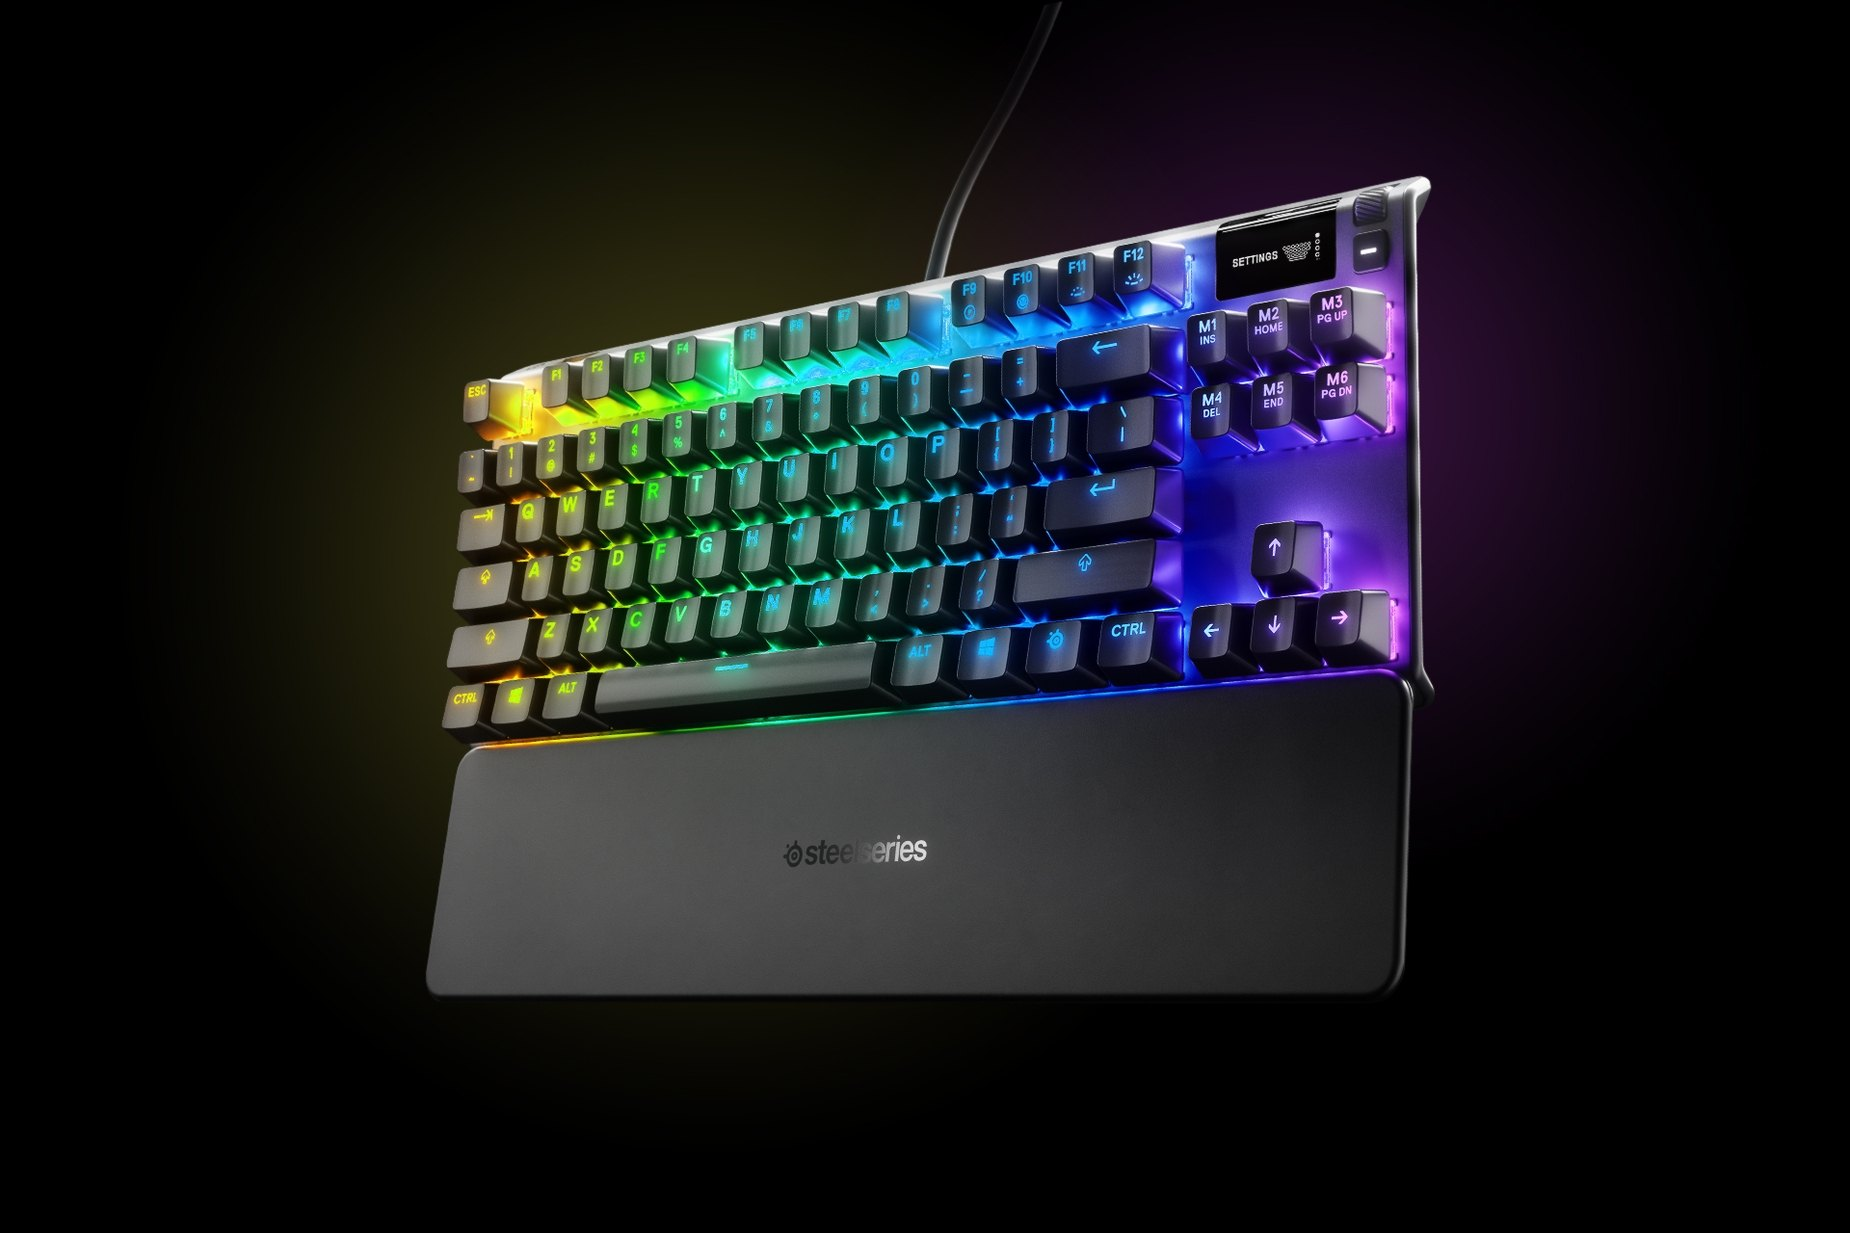 Japanese - Apex 7 TKL (Blue Switch) gaming keyboard with the illumination lit up on dark background, also shows the OLED screen and controls used to change settings and adjust audio